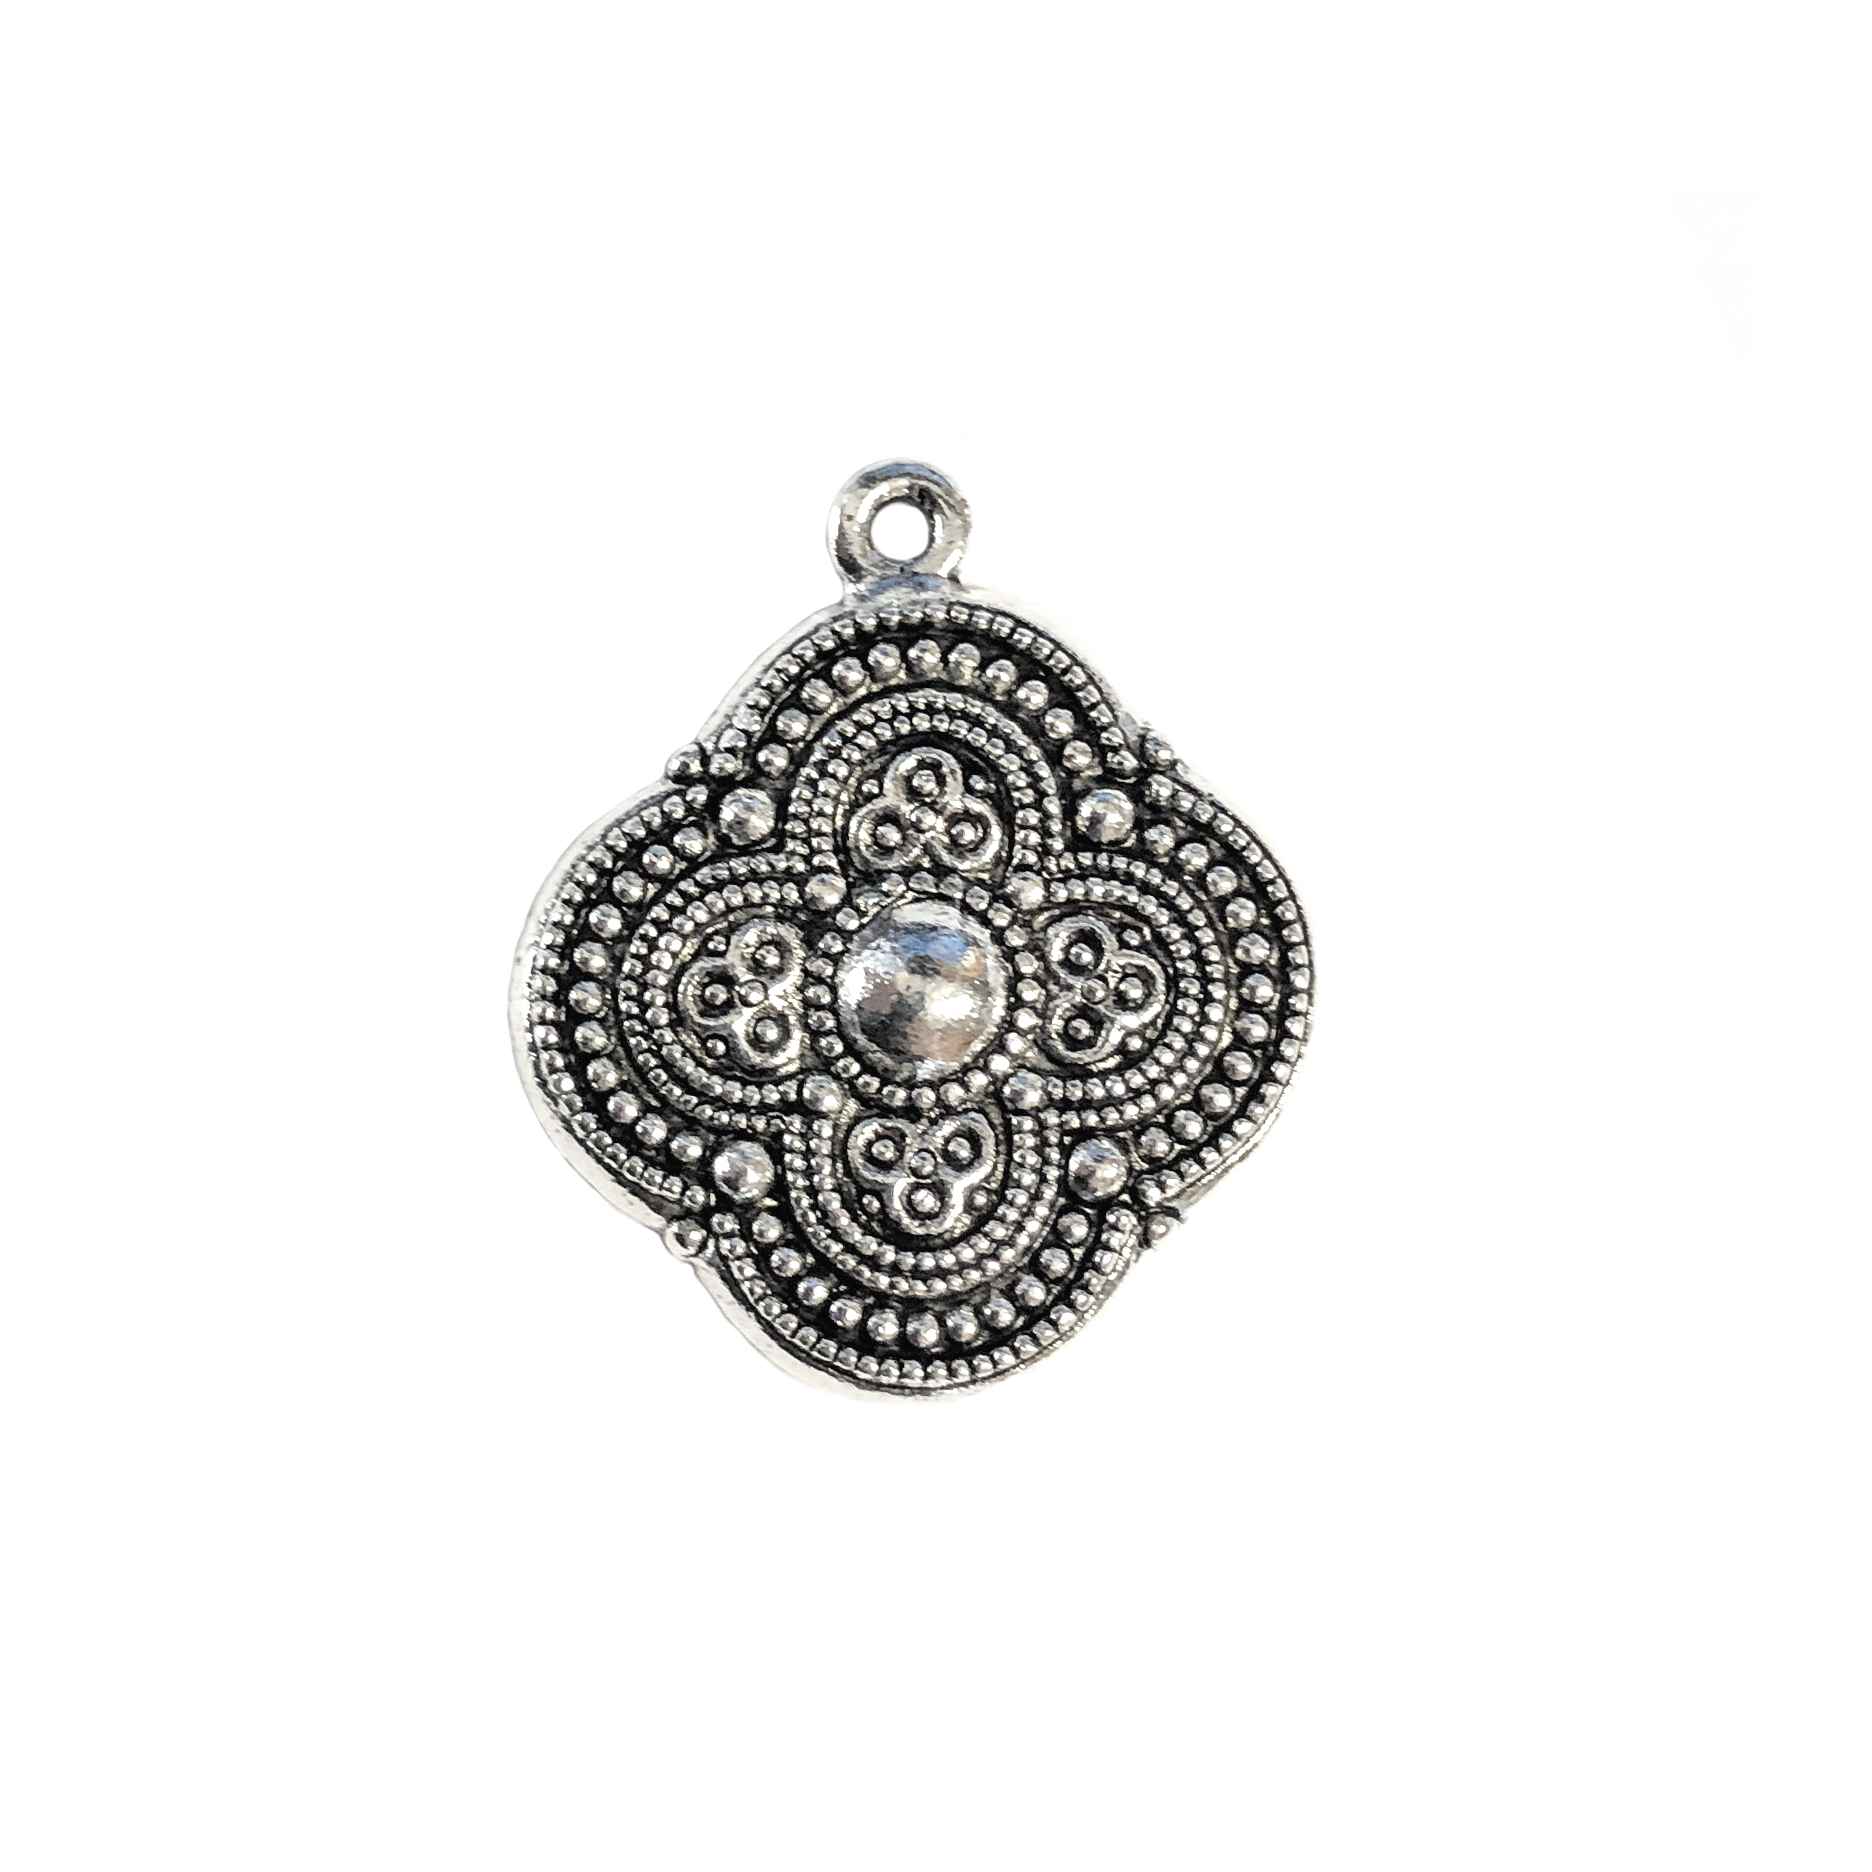 old silver, pendant charm, 09738, lead free pewter, B'sue by 1928, silver plated pewter, antique, vintage jewelry parts, pewter jewelry parts, nickel free finish, made in the USA, 1928 Company, designer jewelry, B'sue Boutiques